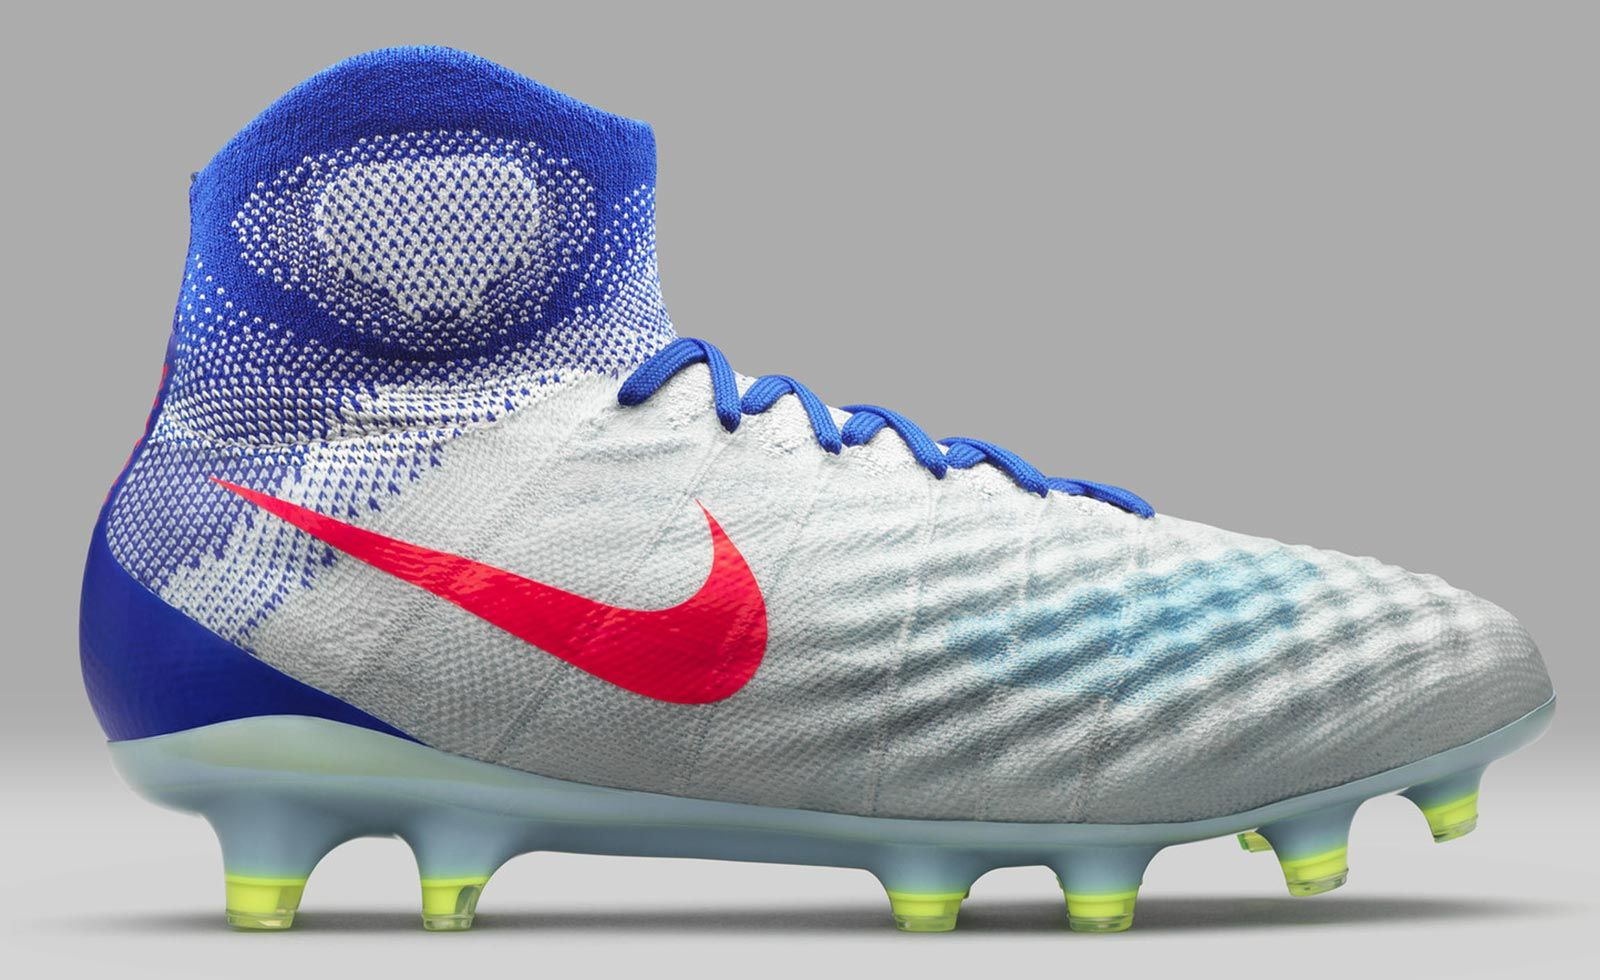 nike shoes soccer men 2016 olympic highlights video 2018 928099